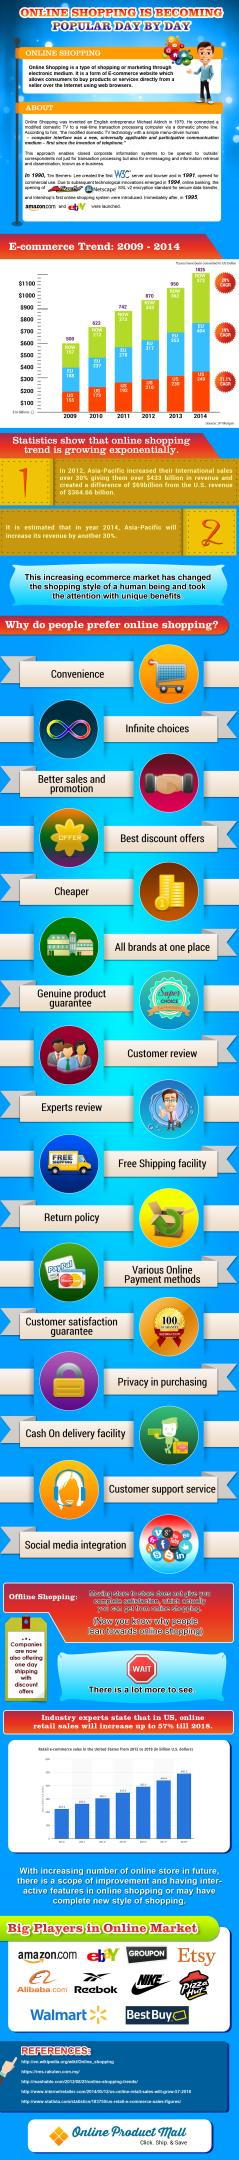 Popularity of Online Shopping